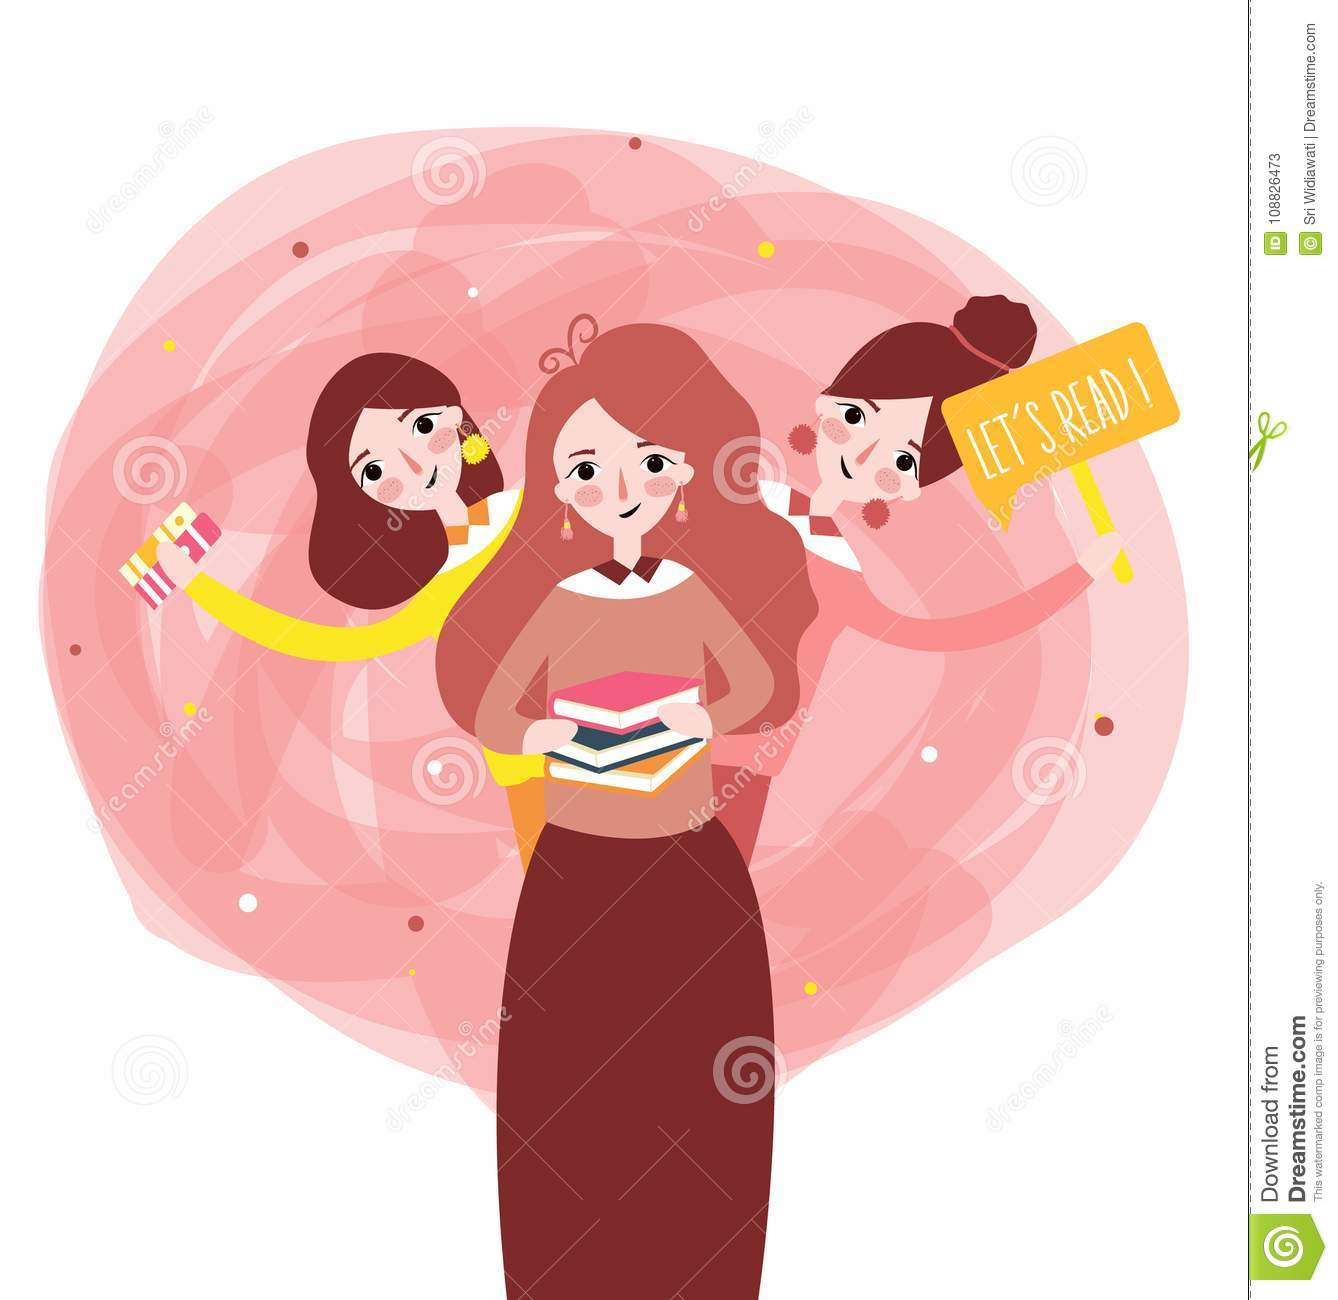 Girls reading book with phrase lets read book learn together illustration